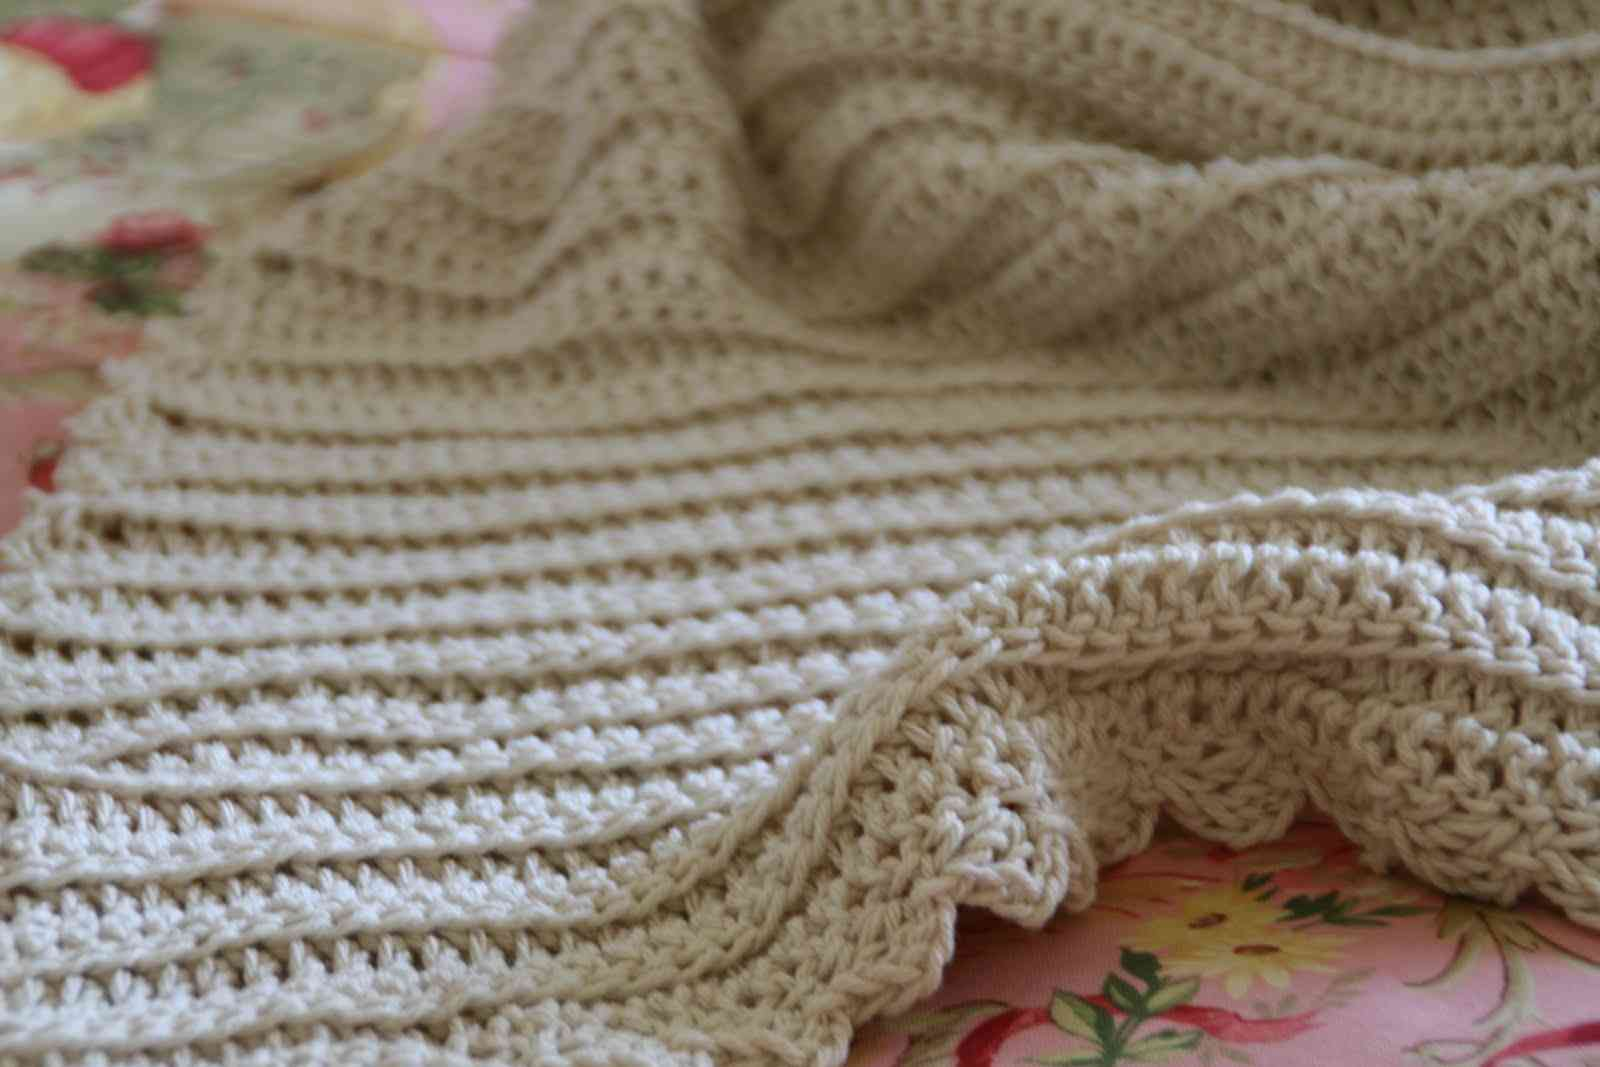 Crochet Patterns Baby Quilts : ... blanket 400x266 15 Most Popular Free Crochet Baby Blanket Patterns